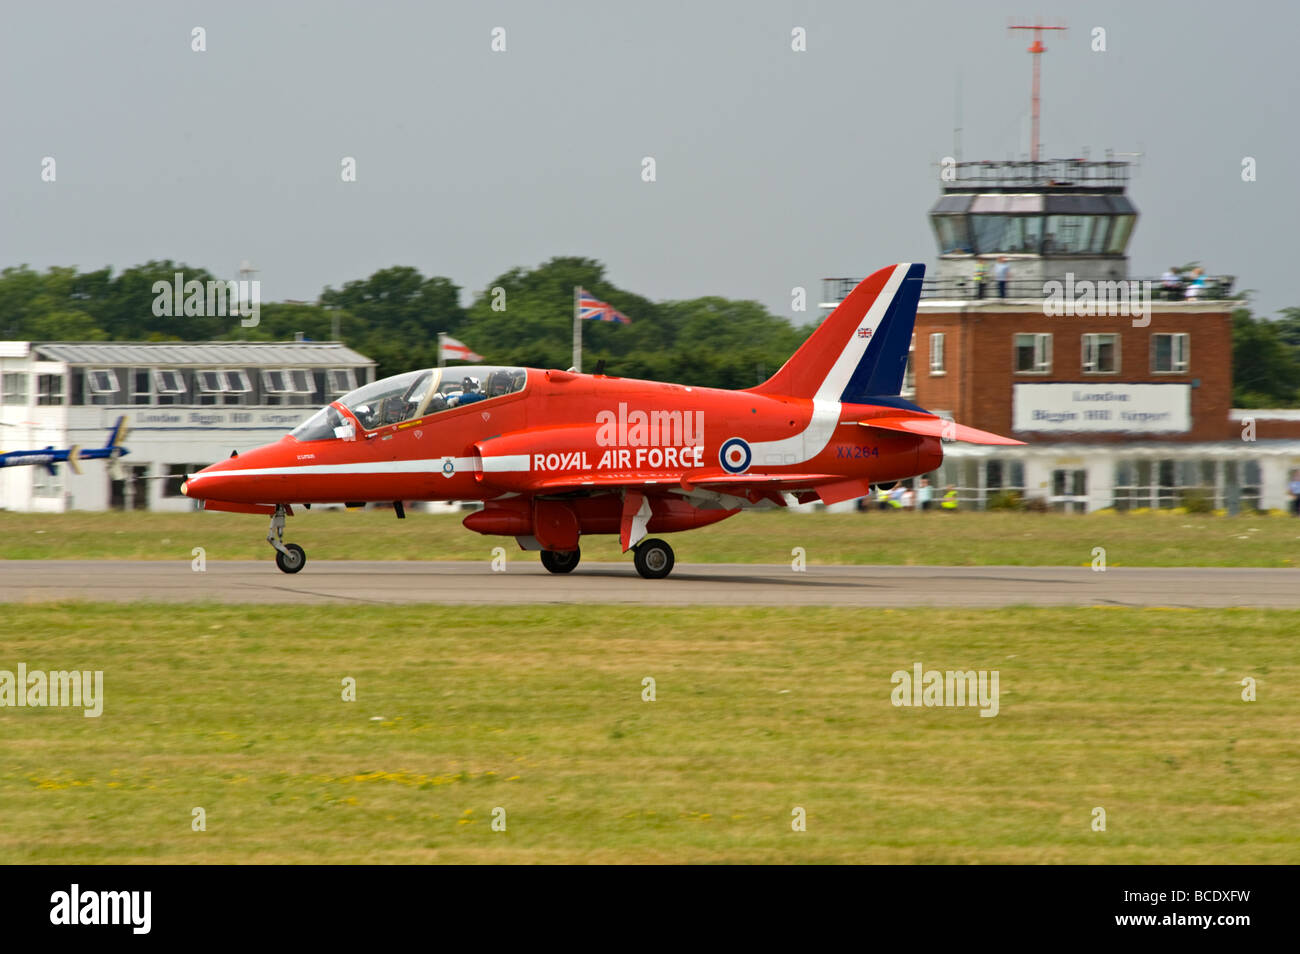 A BAE Hawk aircraft, part of 'The Red Arrows' display team, at Biggin Hill, Kent, England. - Stock Image